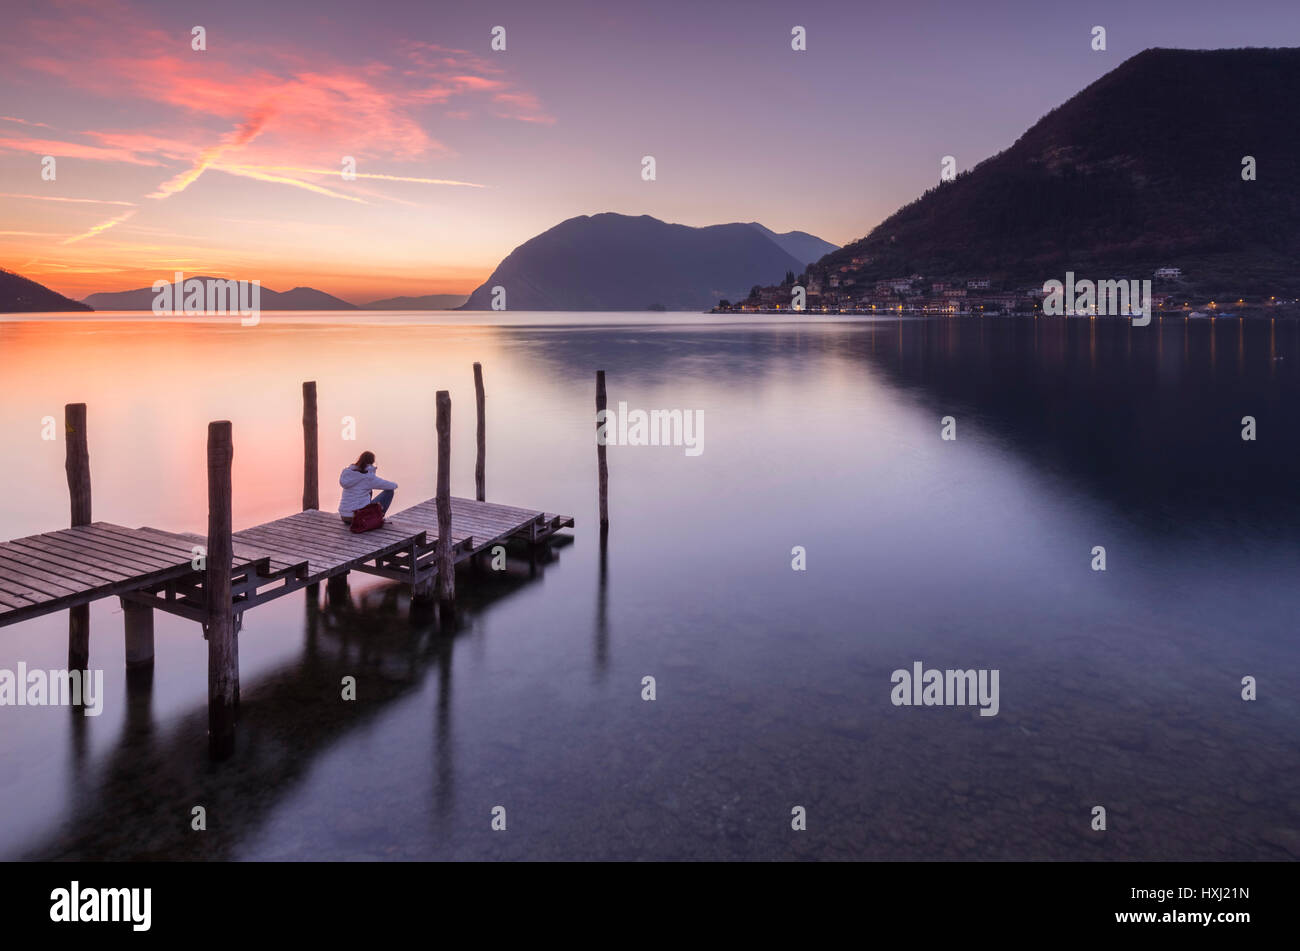 A girl on the pier of Sulzano during a winter sunset, Brescia Province, Iseo Lake, Lombardy, Italy. - Stock Image